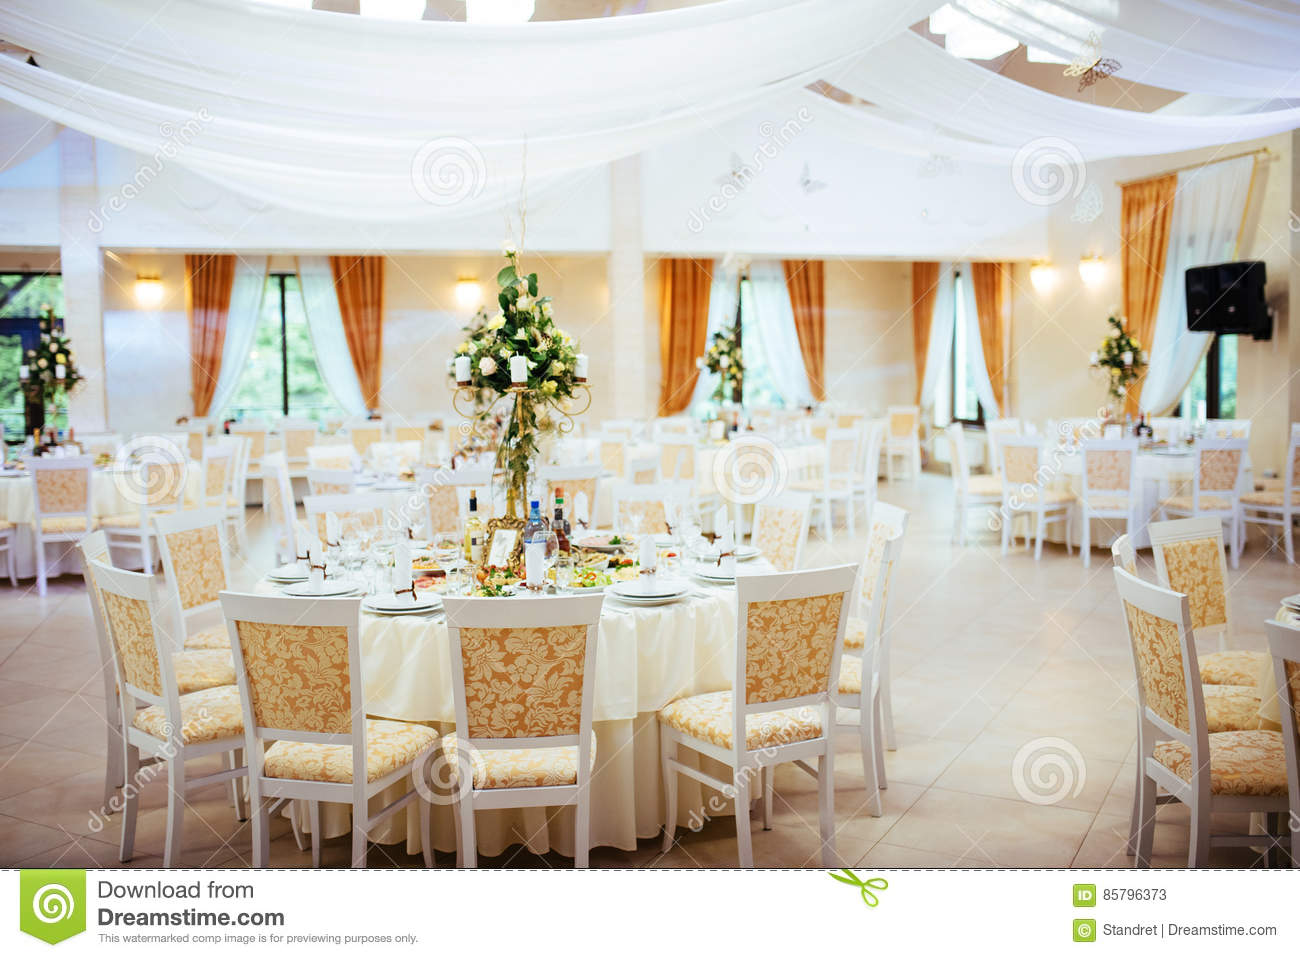 wedding car decoration of two white doves stock photography 20122406. Black Bedroom Furniture Sets. Home Design Ideas